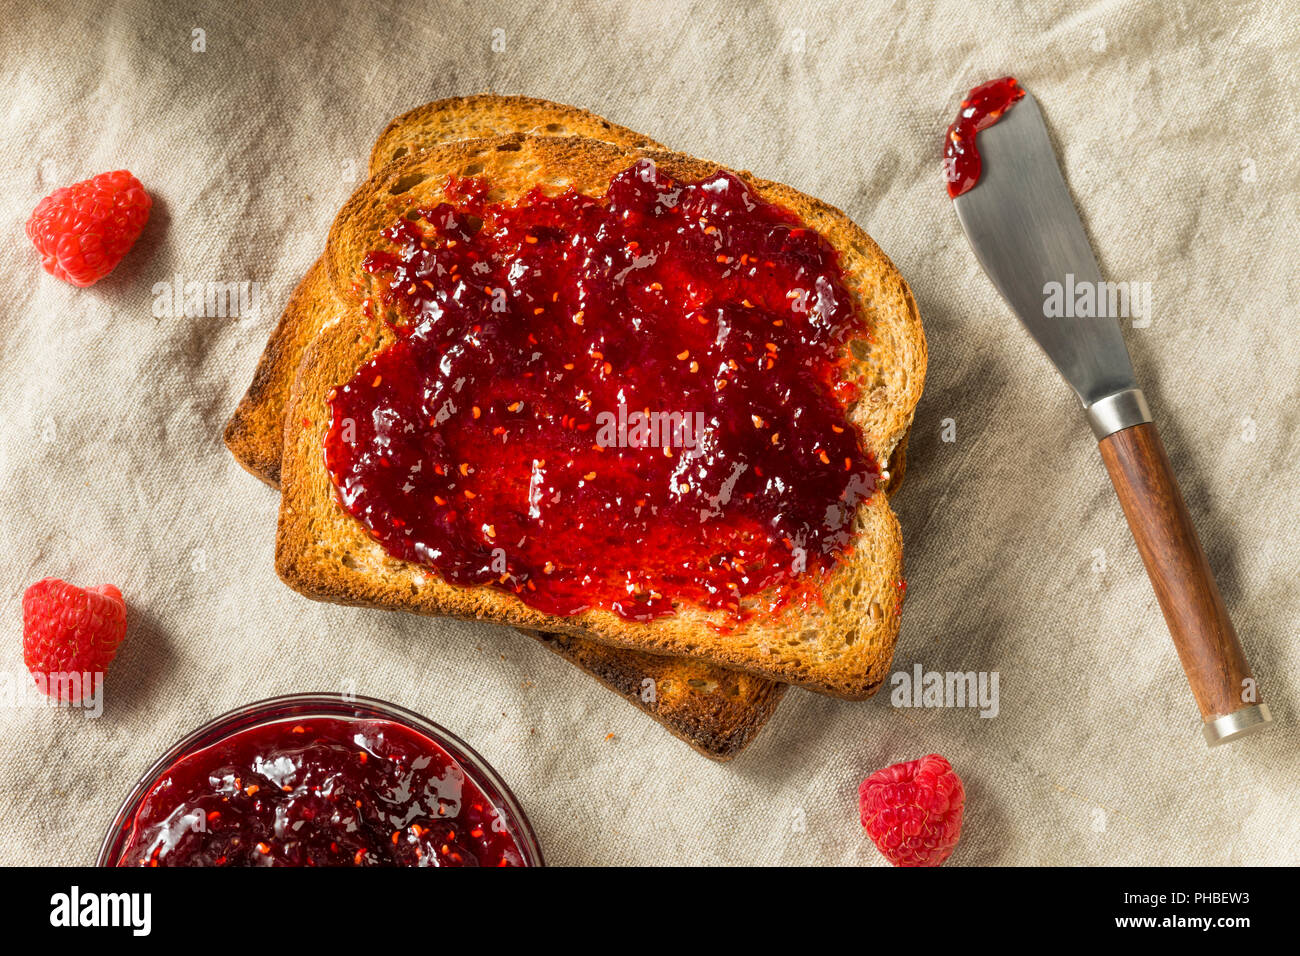 Healthy Homemade Raspberry Jam Preserve Ready to Eat - Stock Image